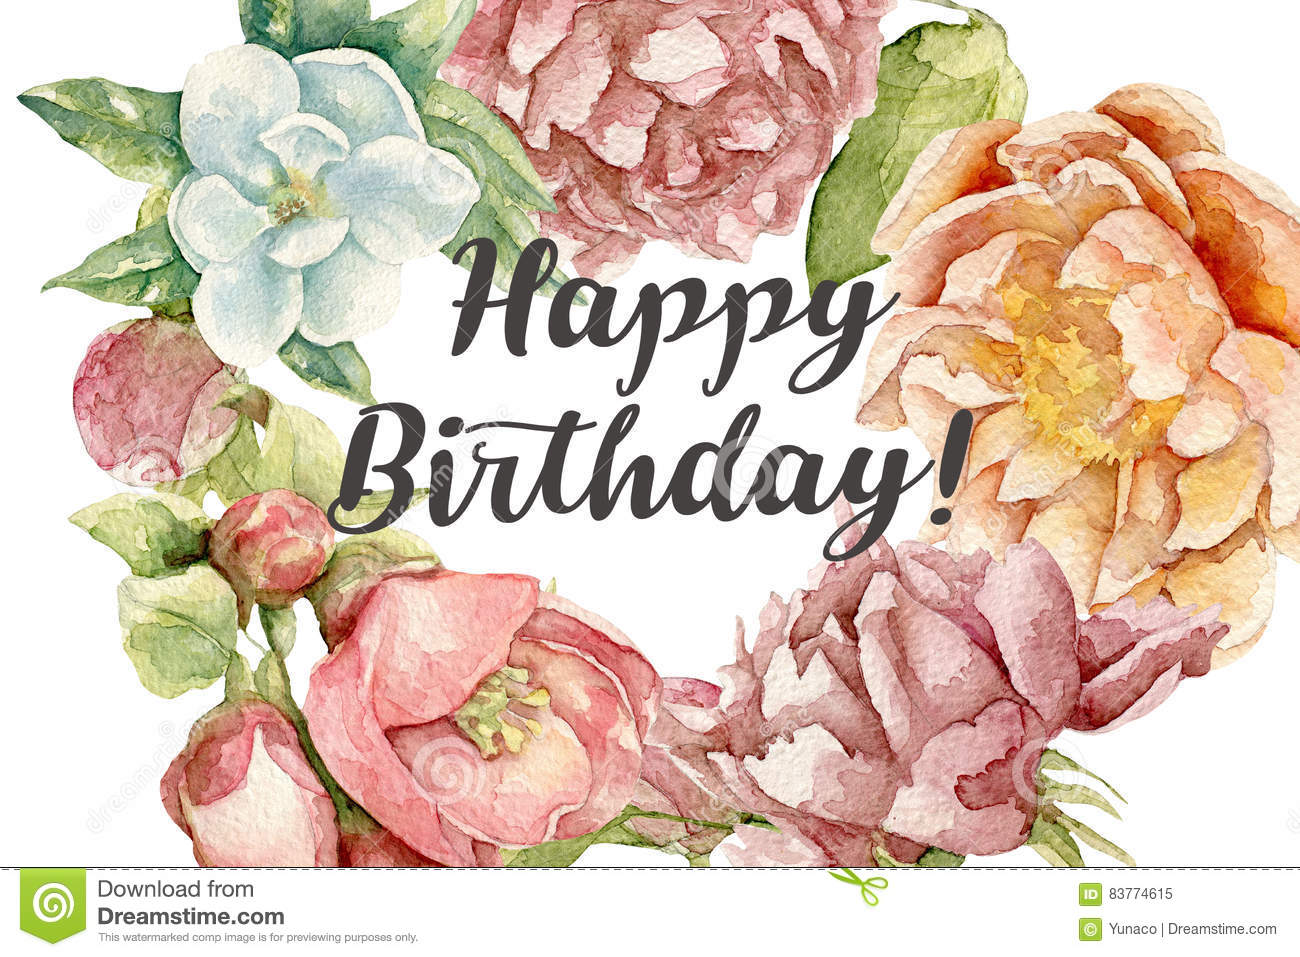 Happy birthday card with watercolor flowers stock illustration happy birthday card with watercolor flowers izmirmasajfo